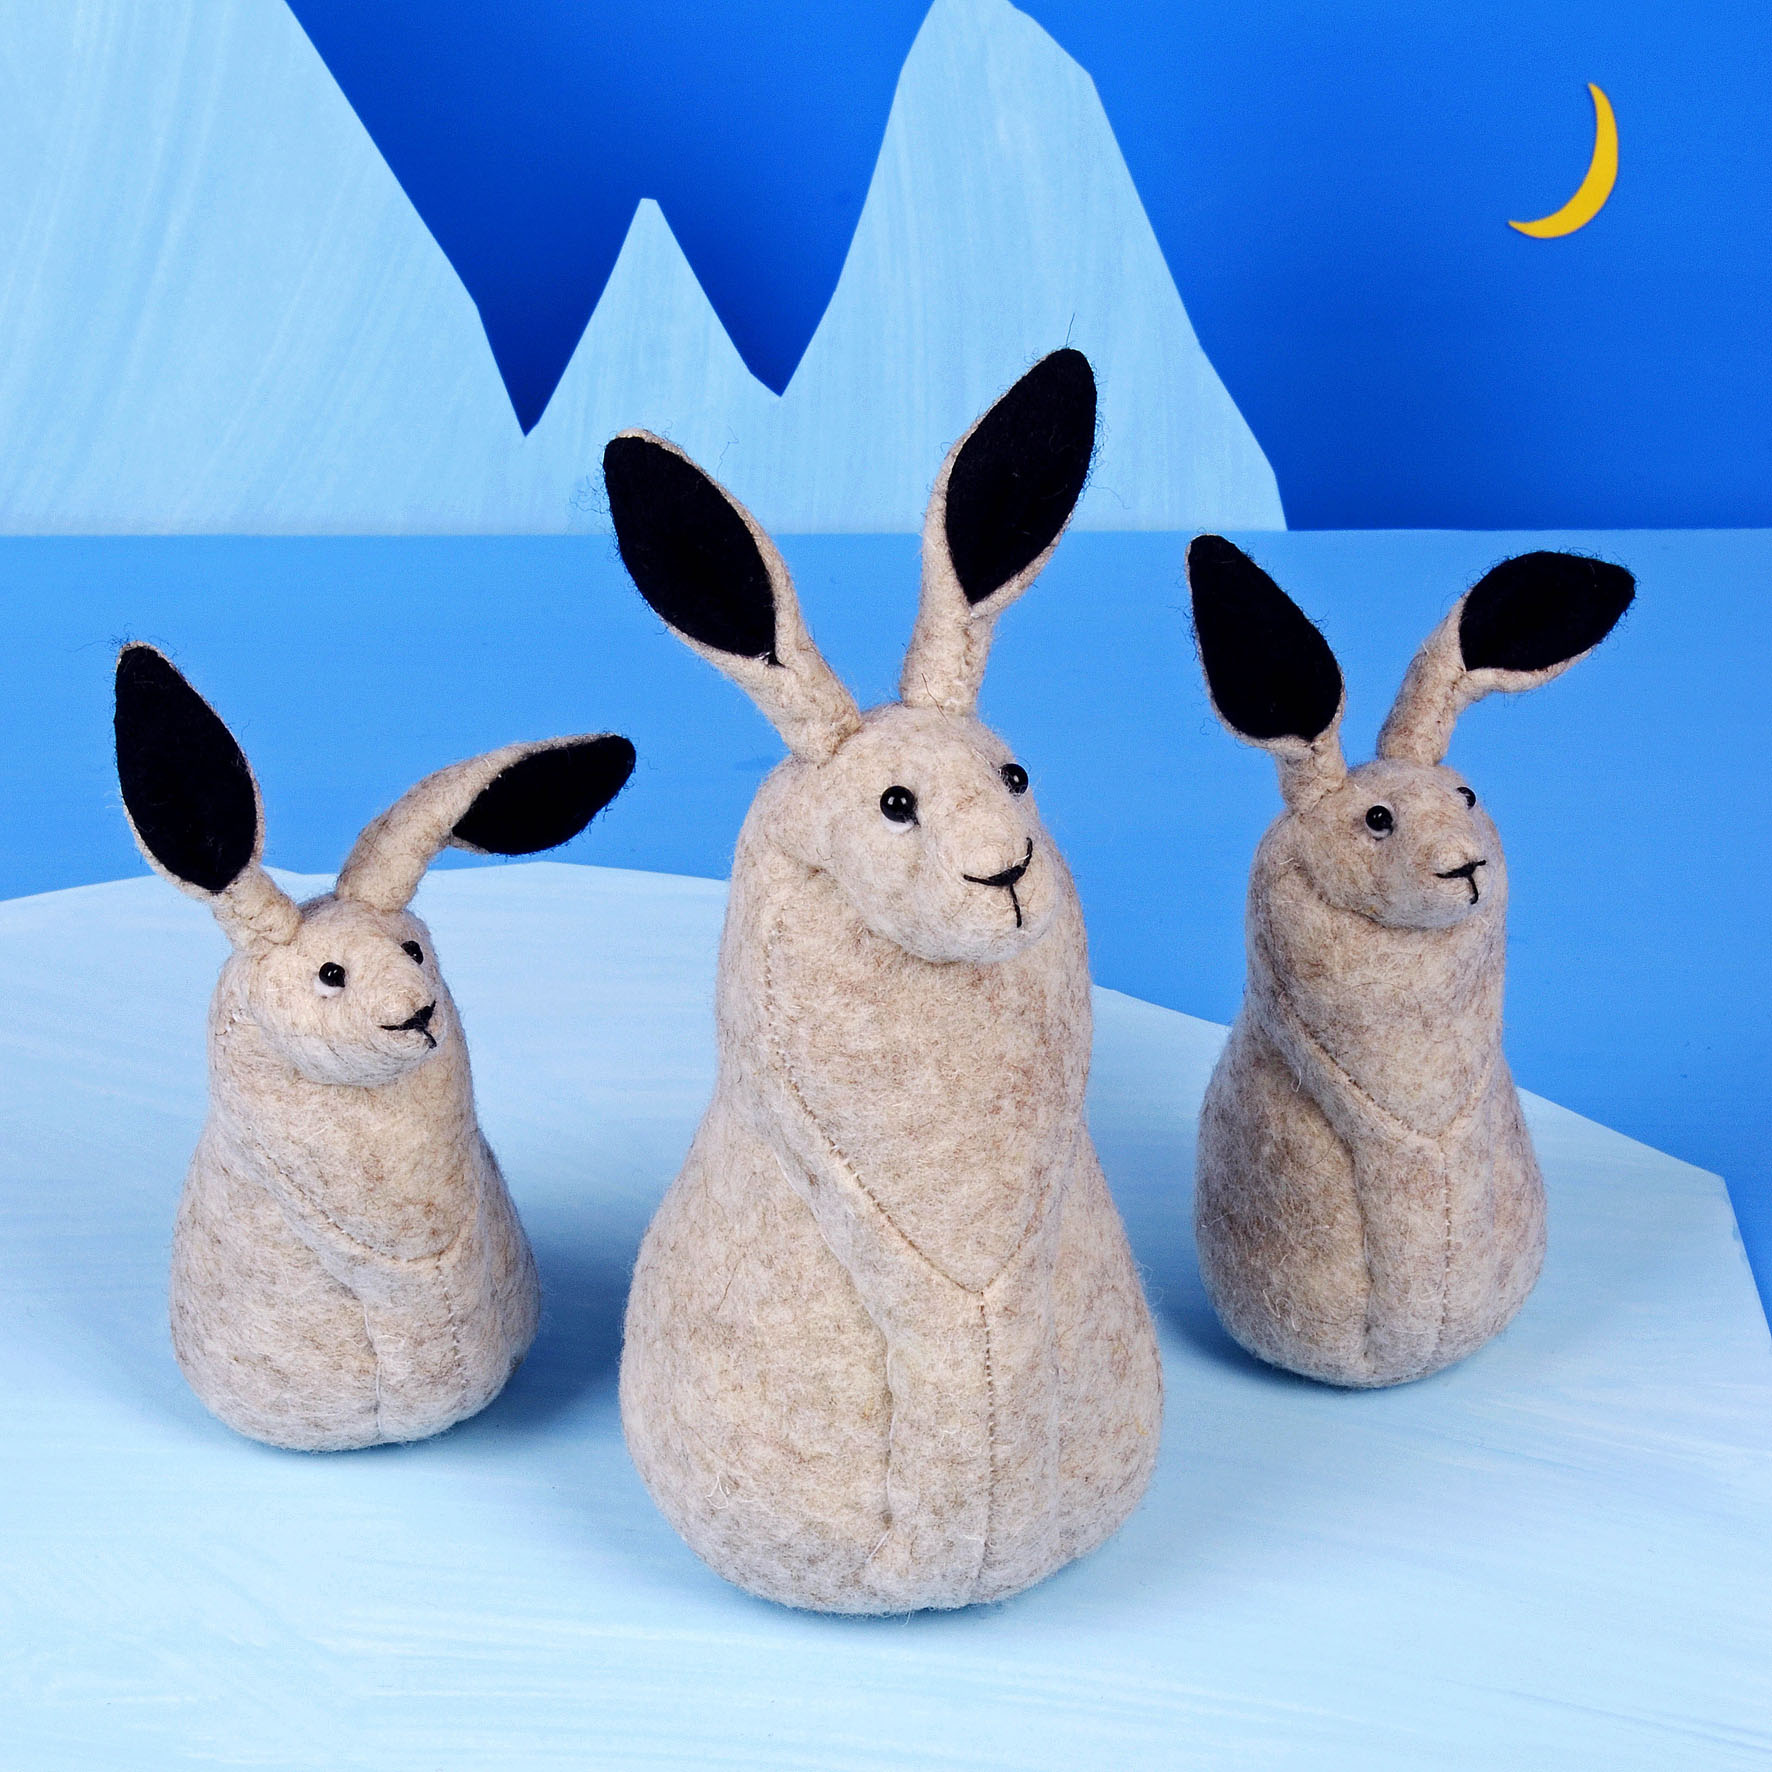 Hector the Arctic Hare, handmade from 100% wool felt.